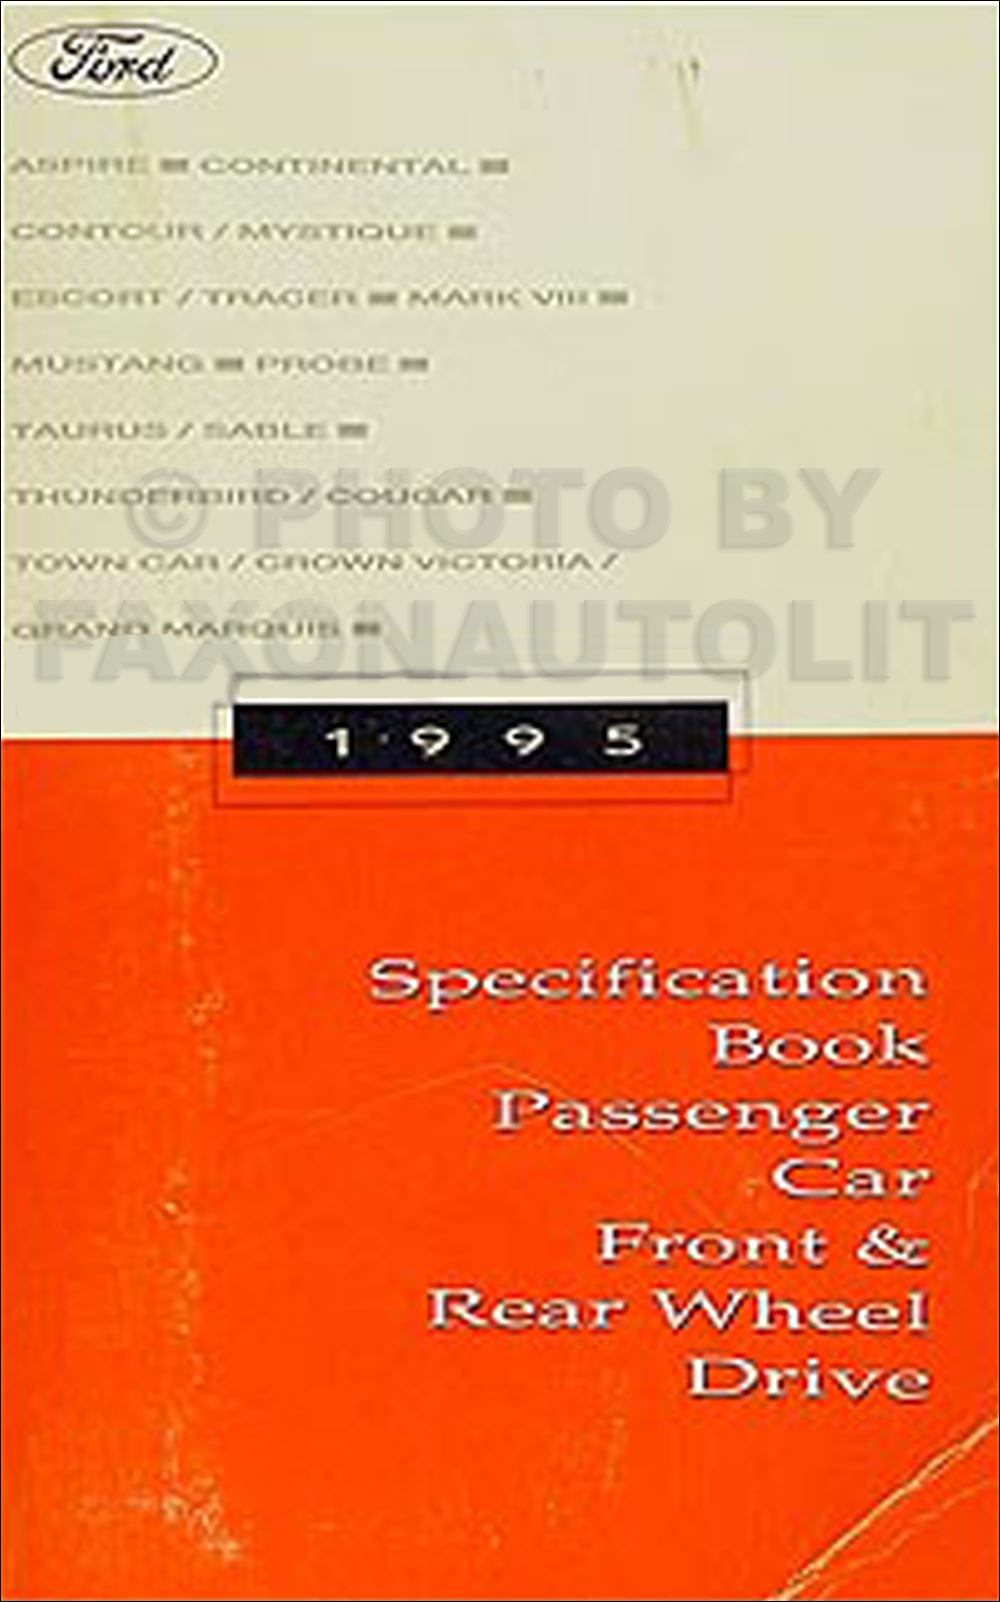 1995 Ford Lincoln Mercury Service Specifications Book Original